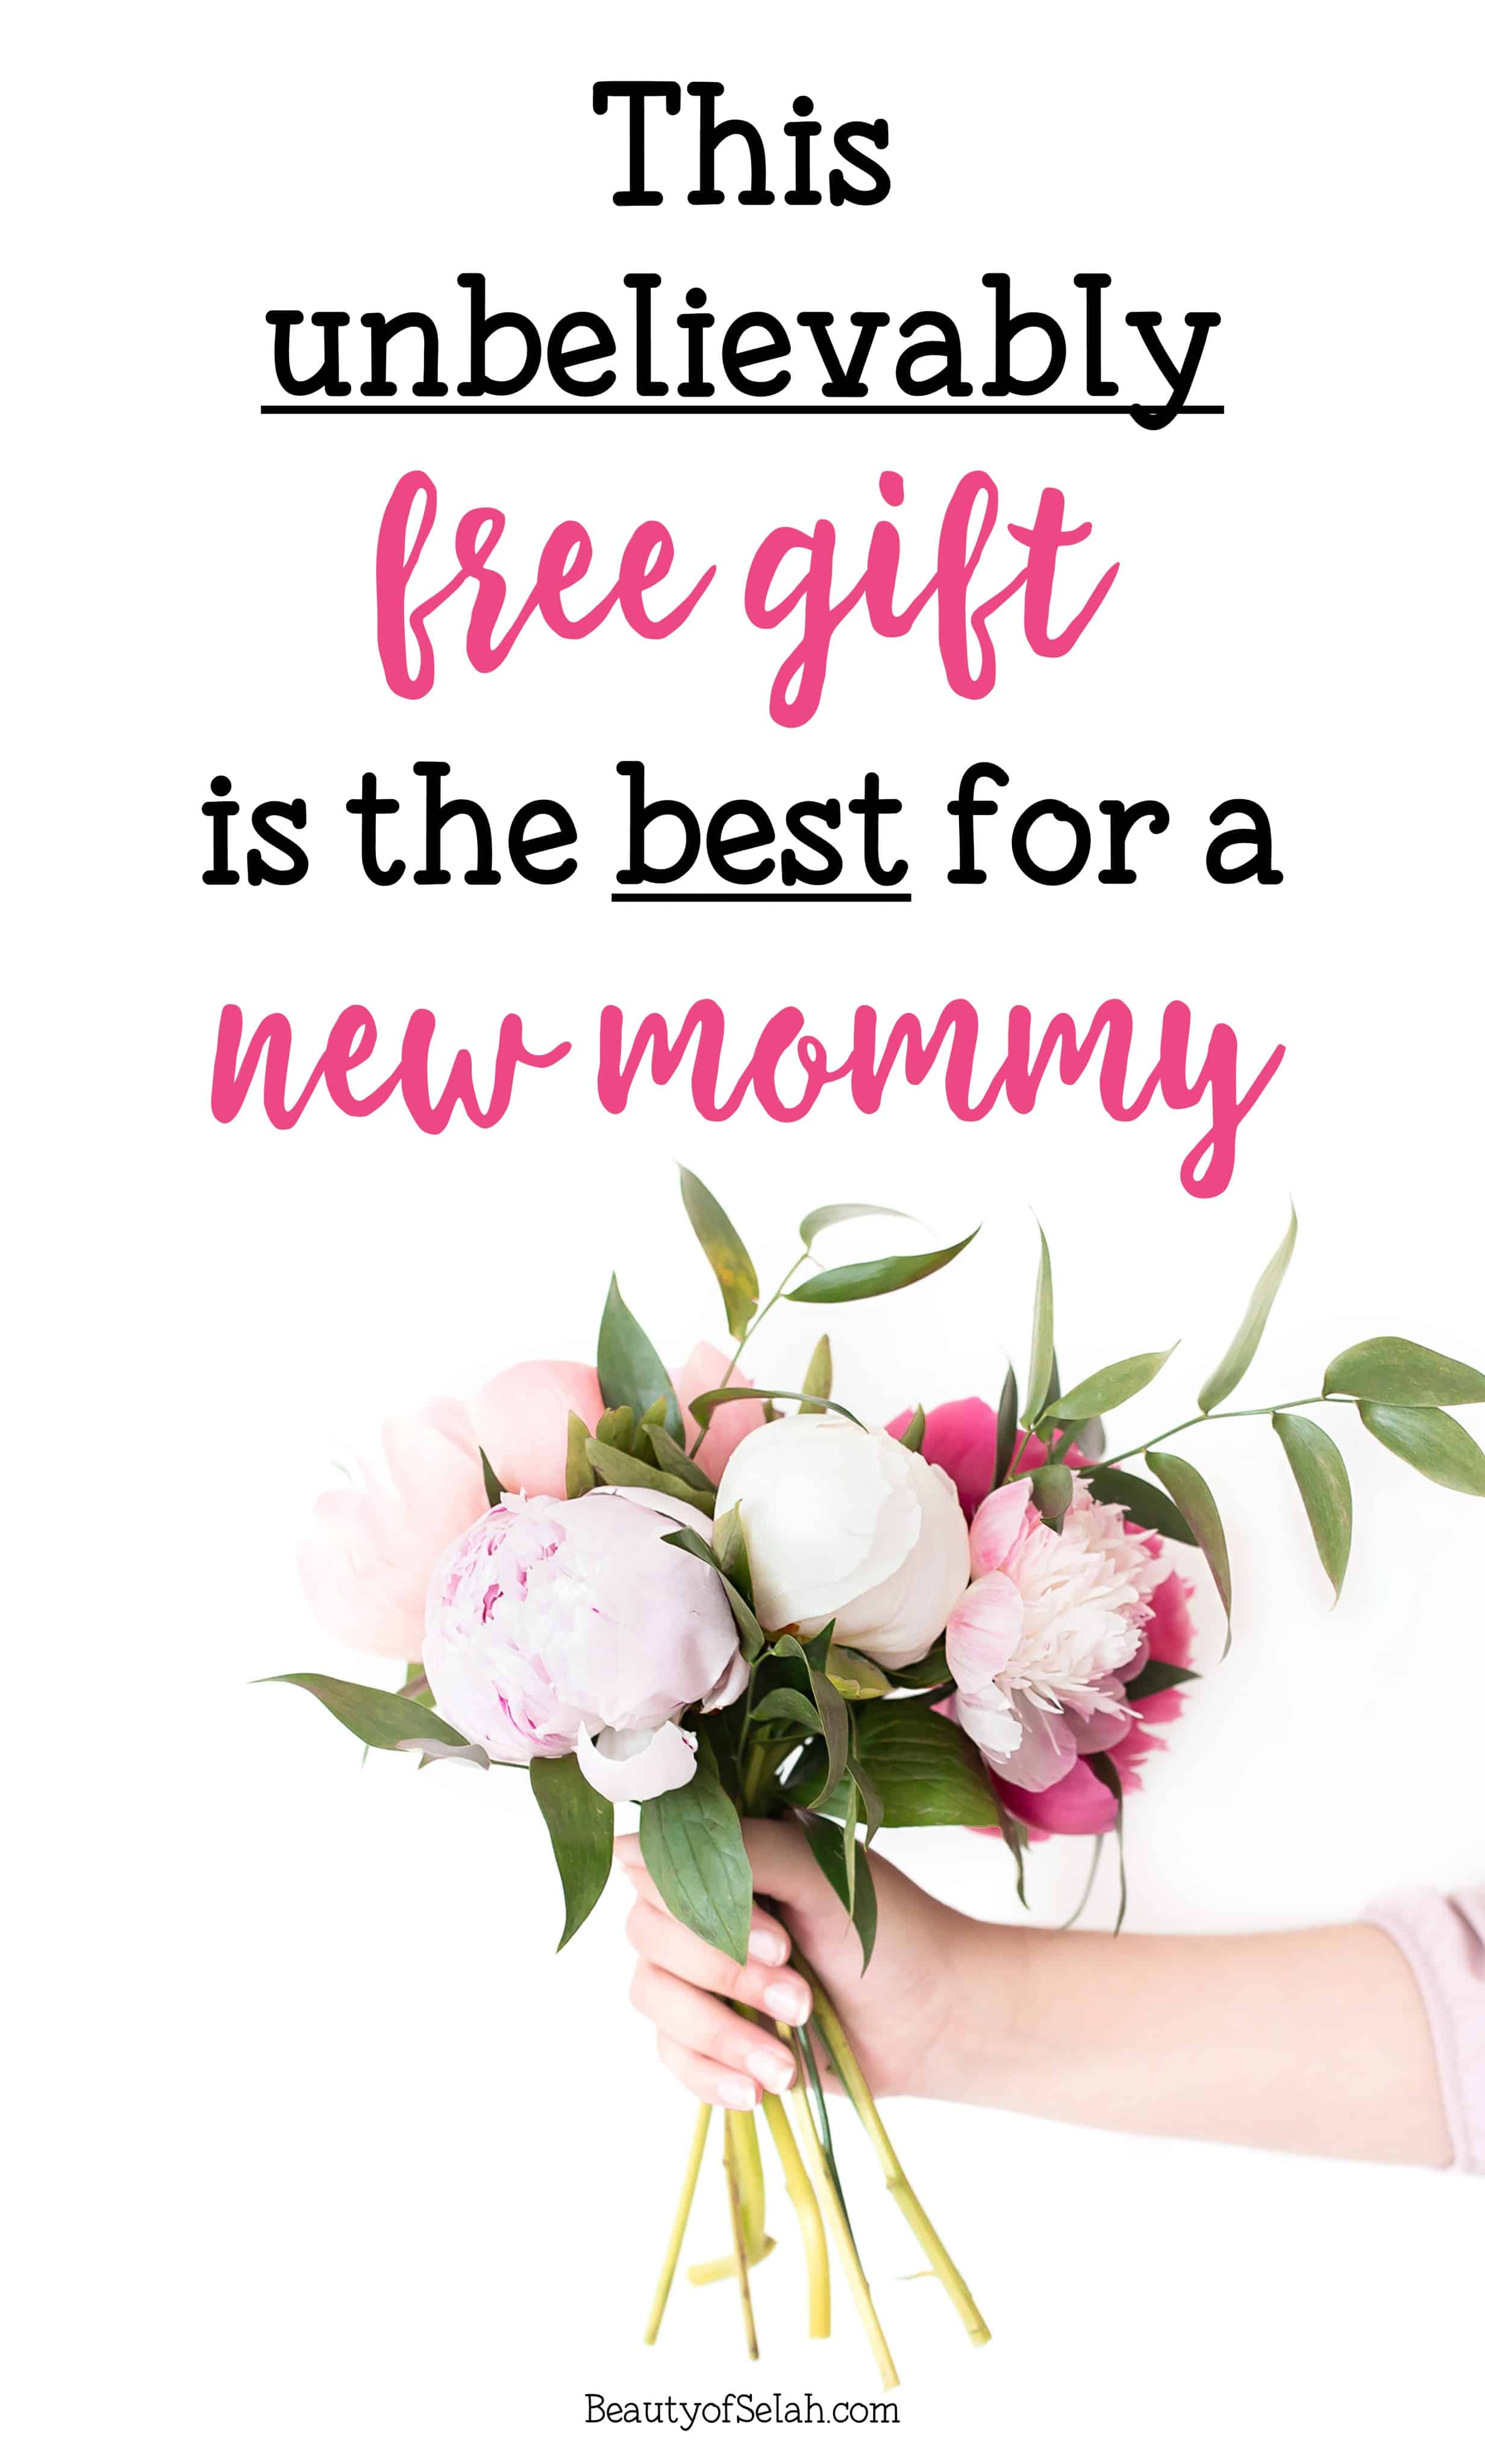 This unbelievable free gift is the best for a new mommy